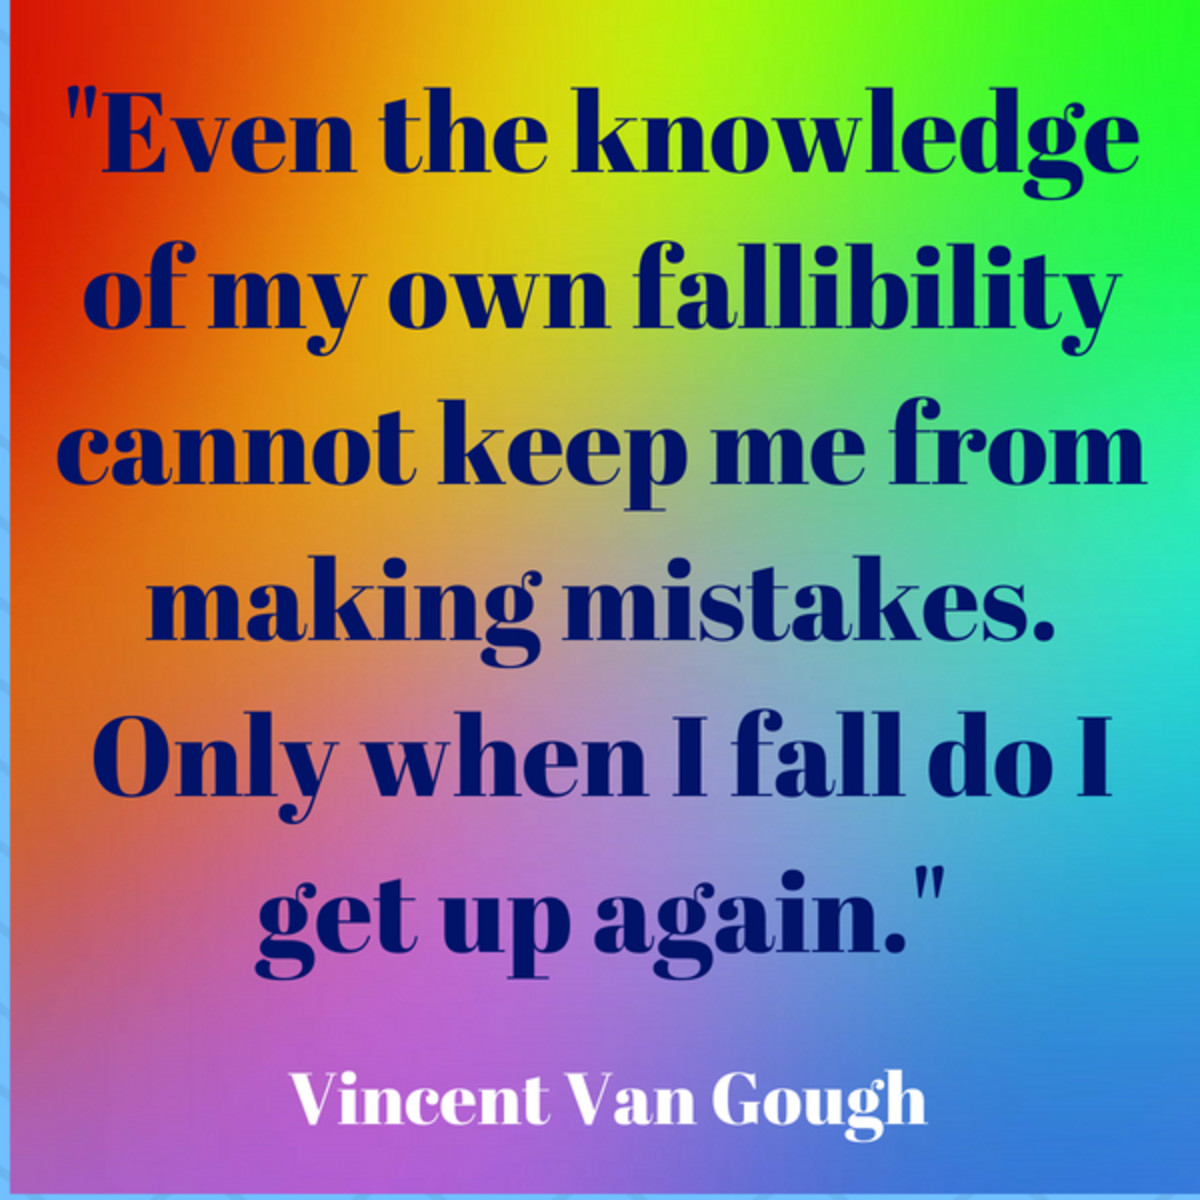 Five Inspirational Quotes About Making Mistakes and Moving ...